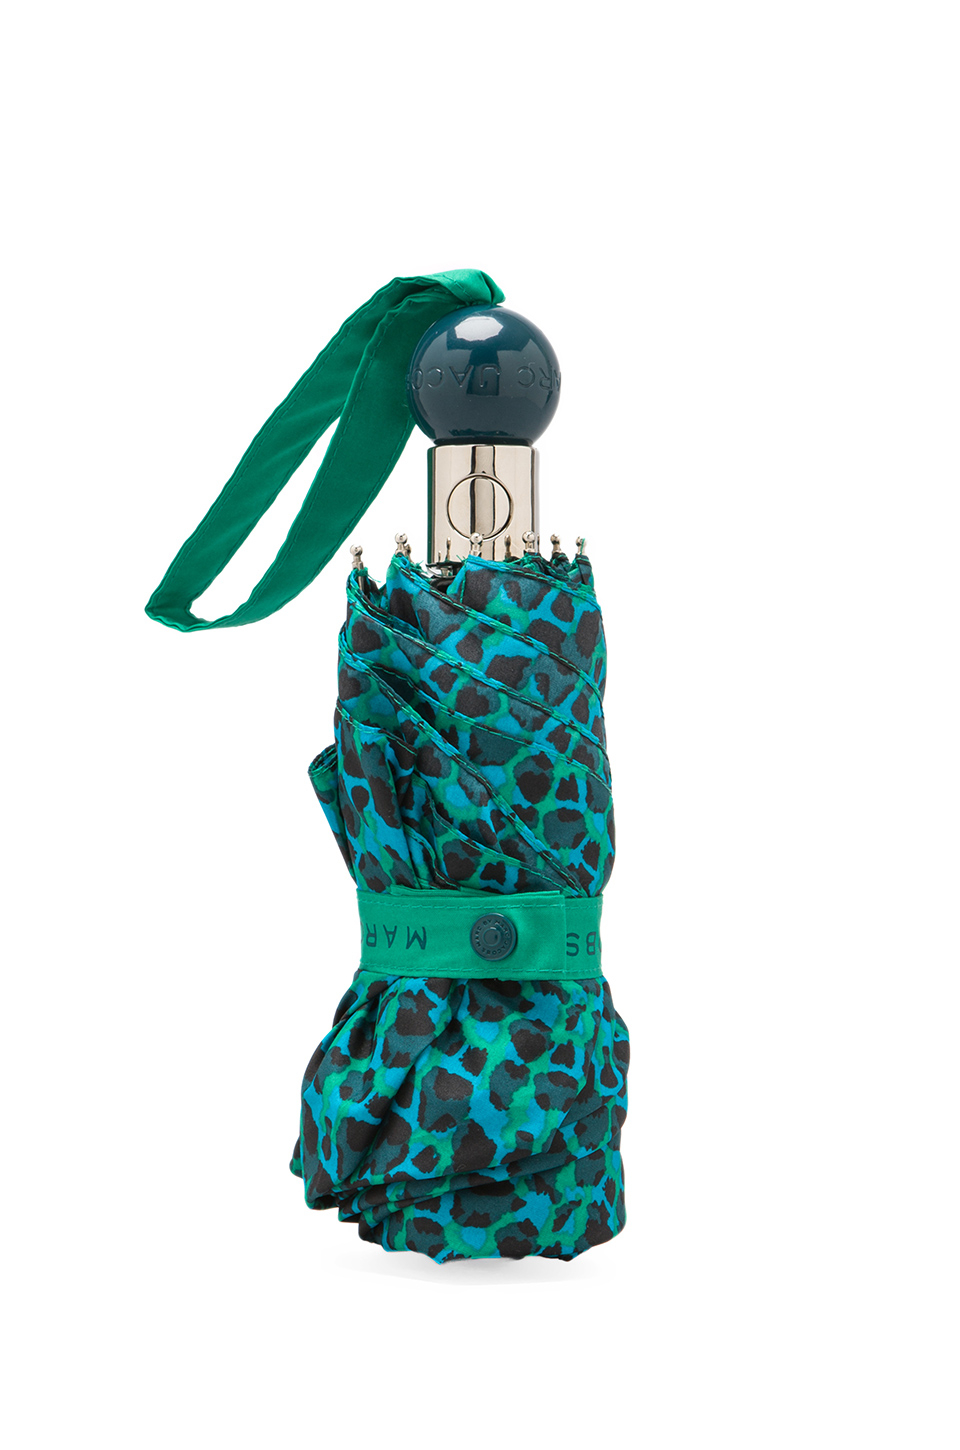 Marc by marc jacobs Isa Printes Umbrella in Green | Lyst